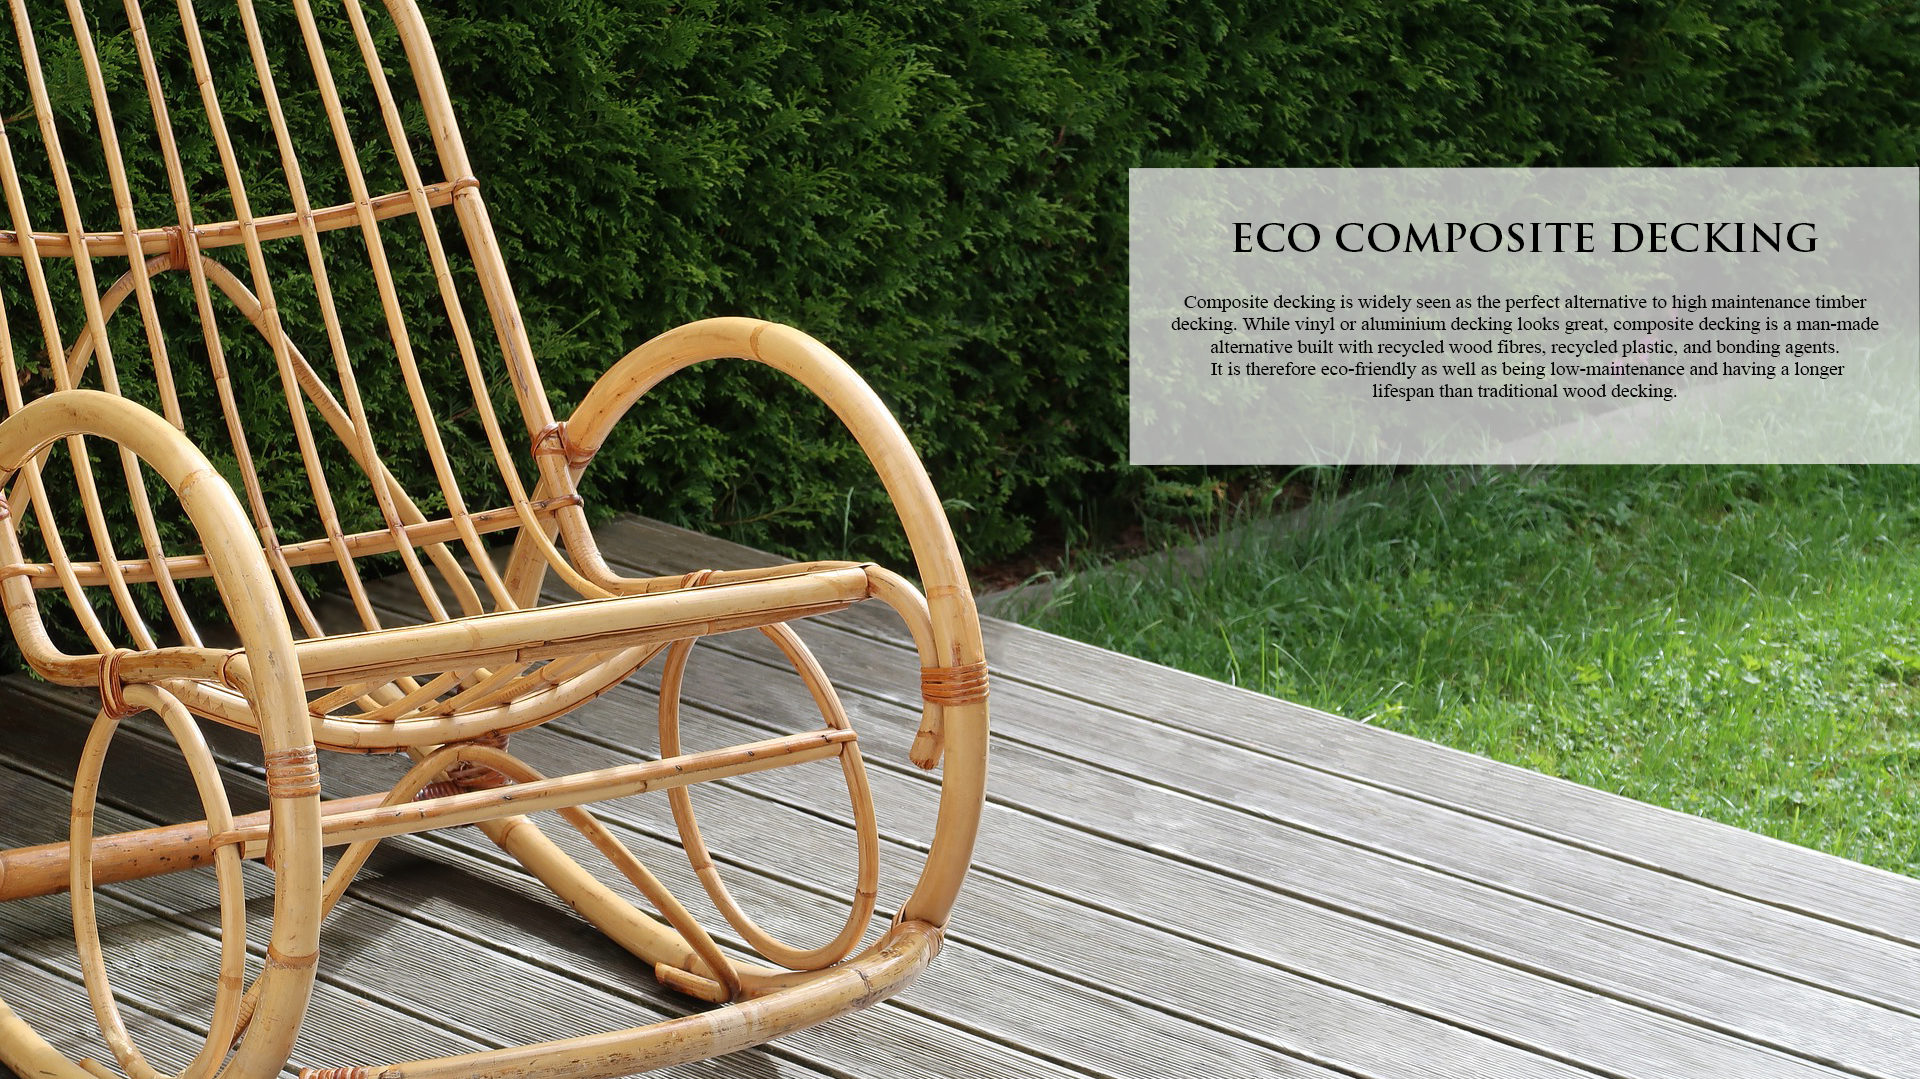 ECO COMPOSITE DECKING